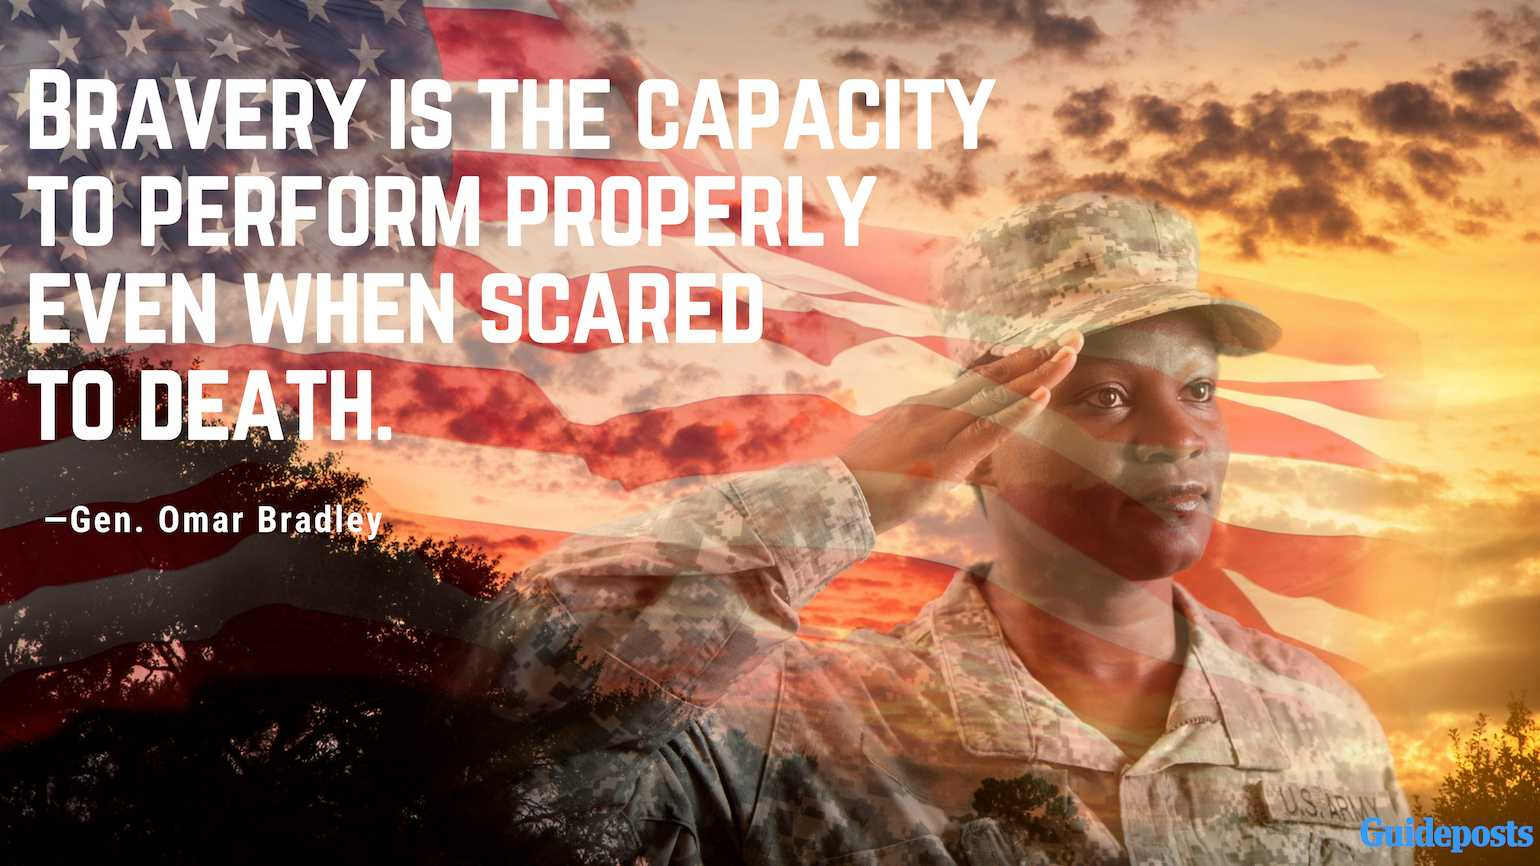 16 Inspiring Quotes for Veterans Day